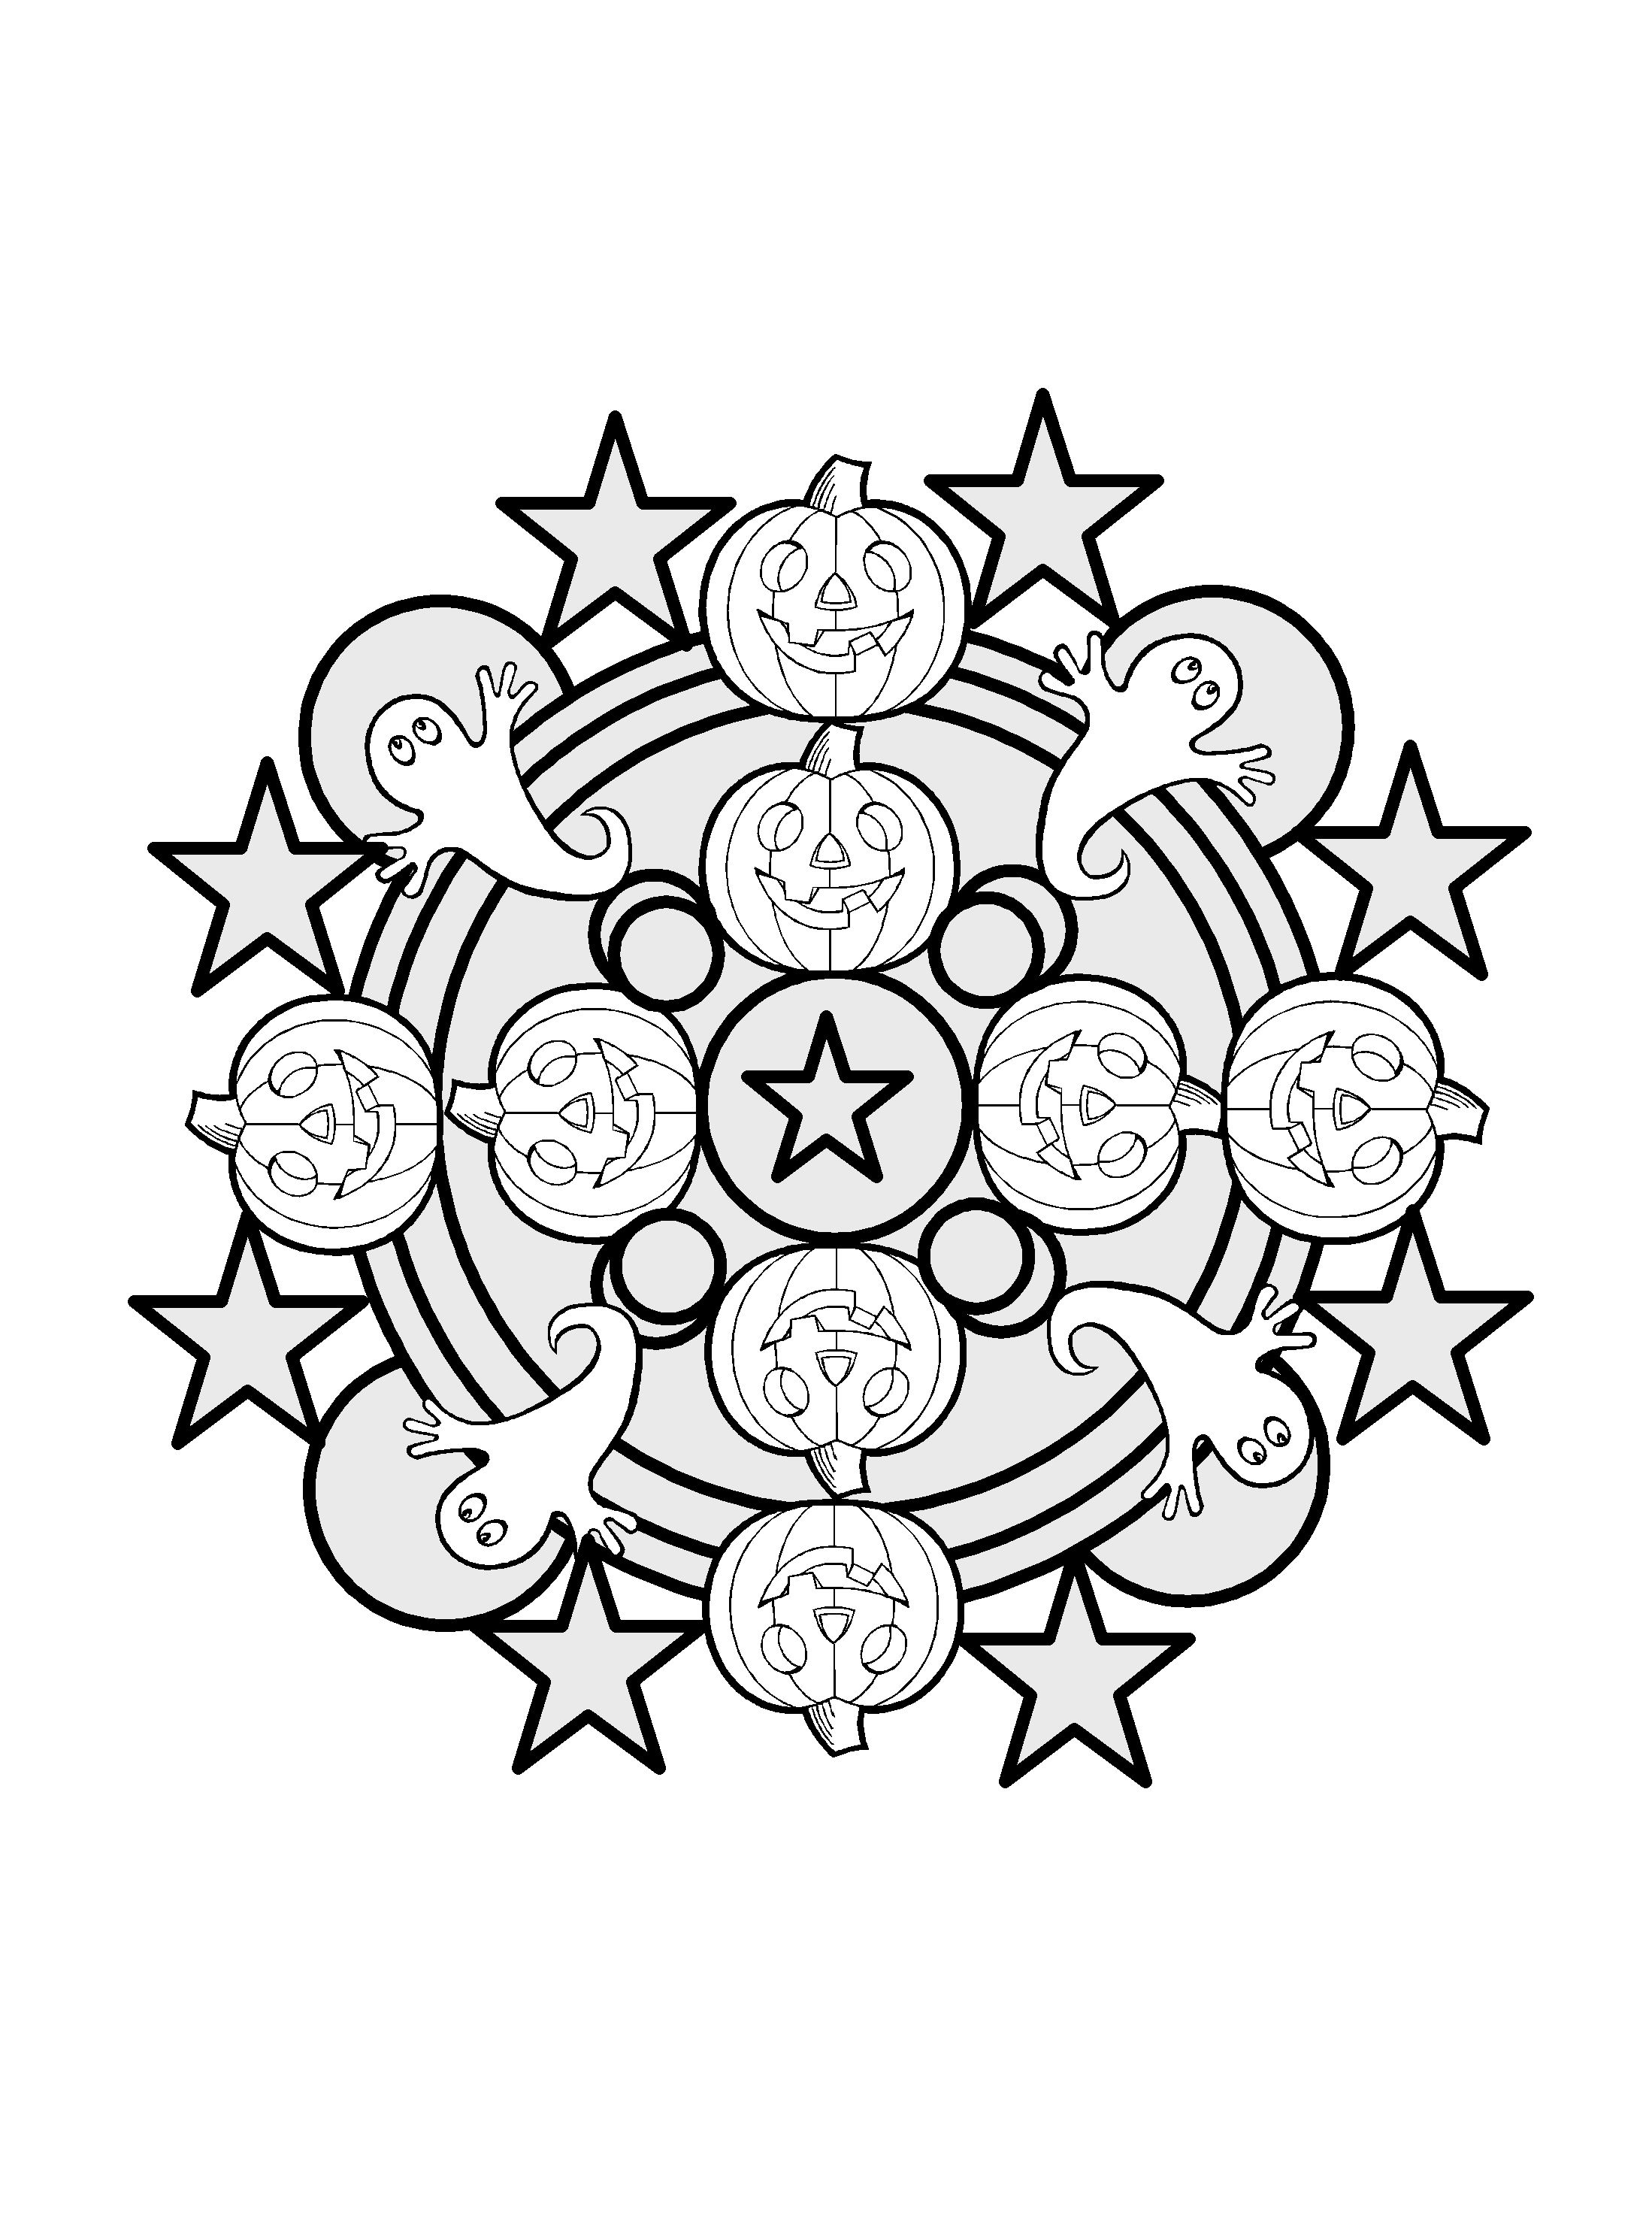 Mandala Coloring Page | Crafty Ideas: Embroidery | Pinterest ...